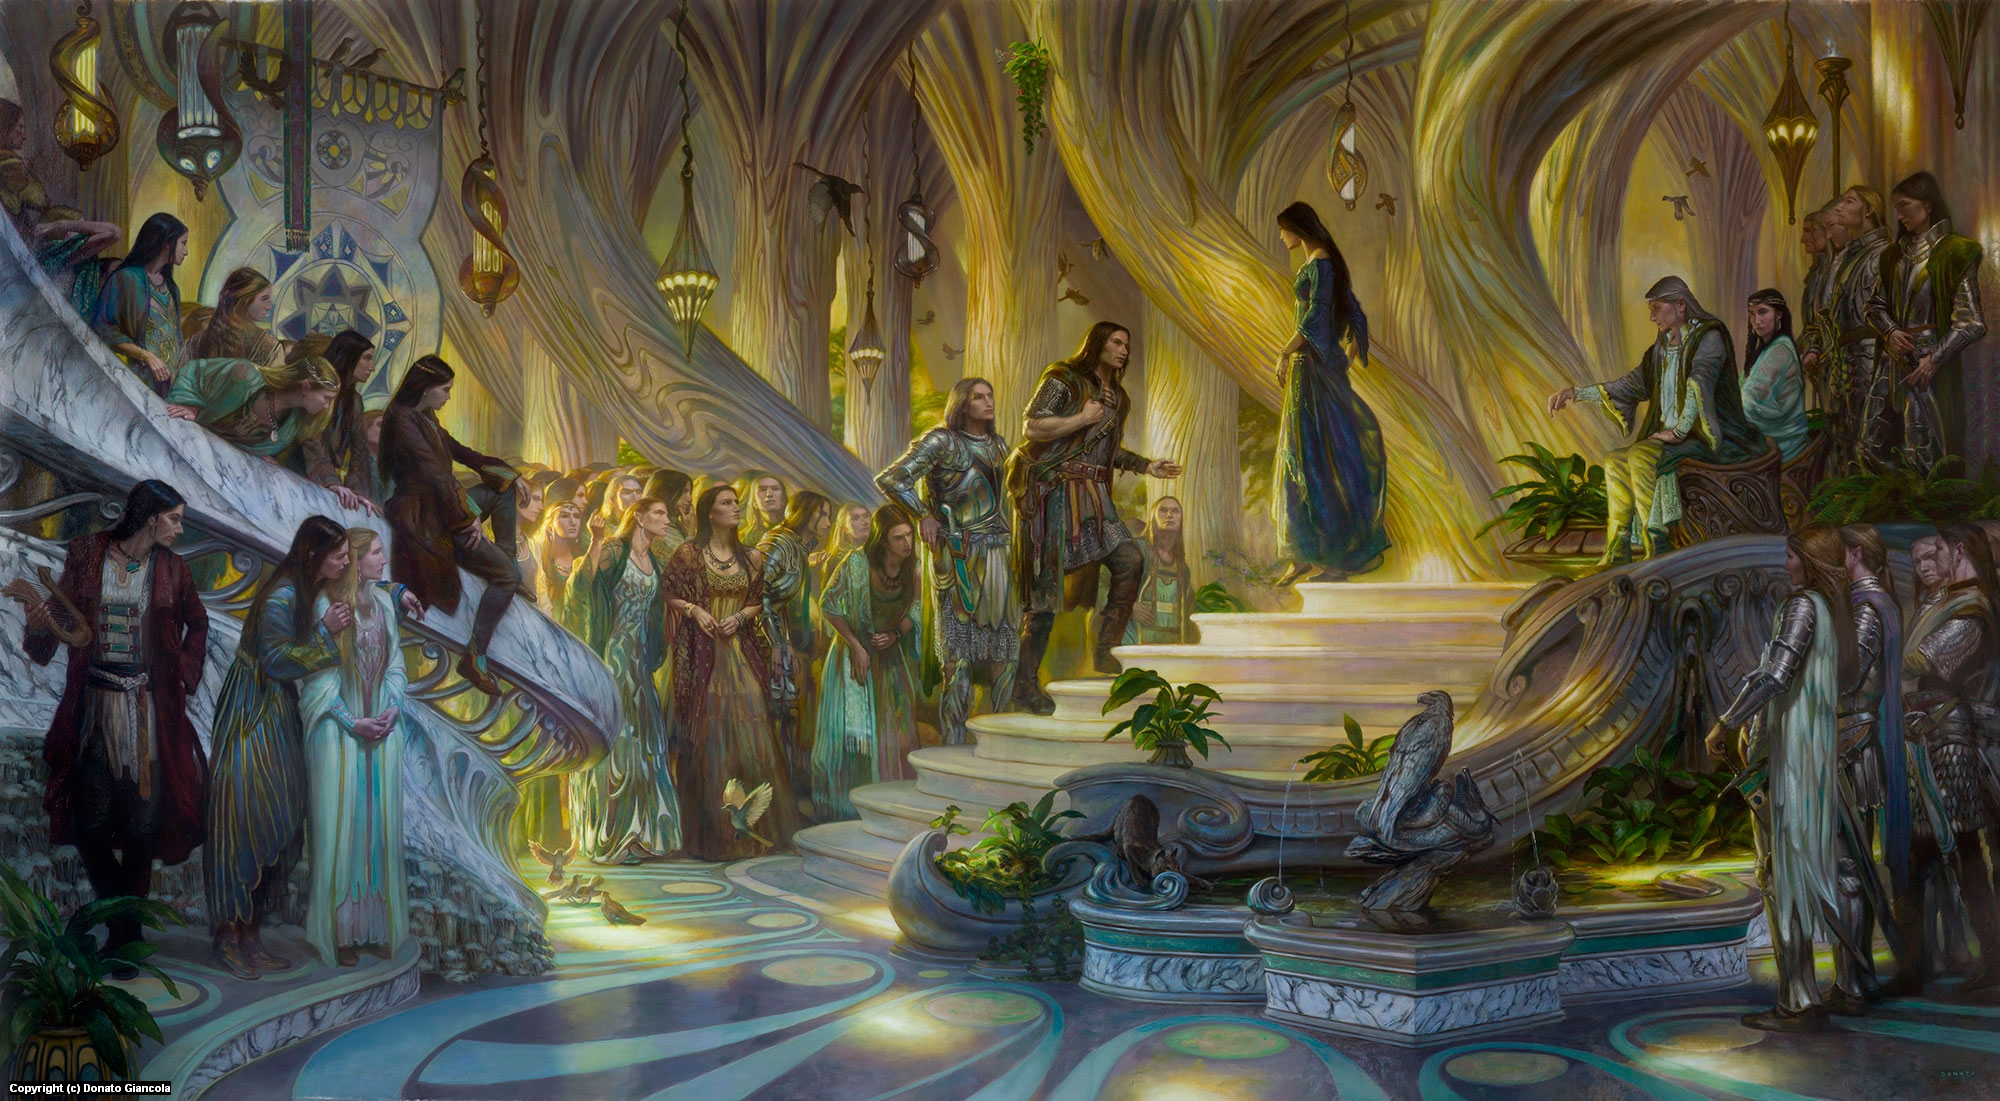 Beren and Luthien in the Court of Thingol and Melian Artwork by Donato Giancola